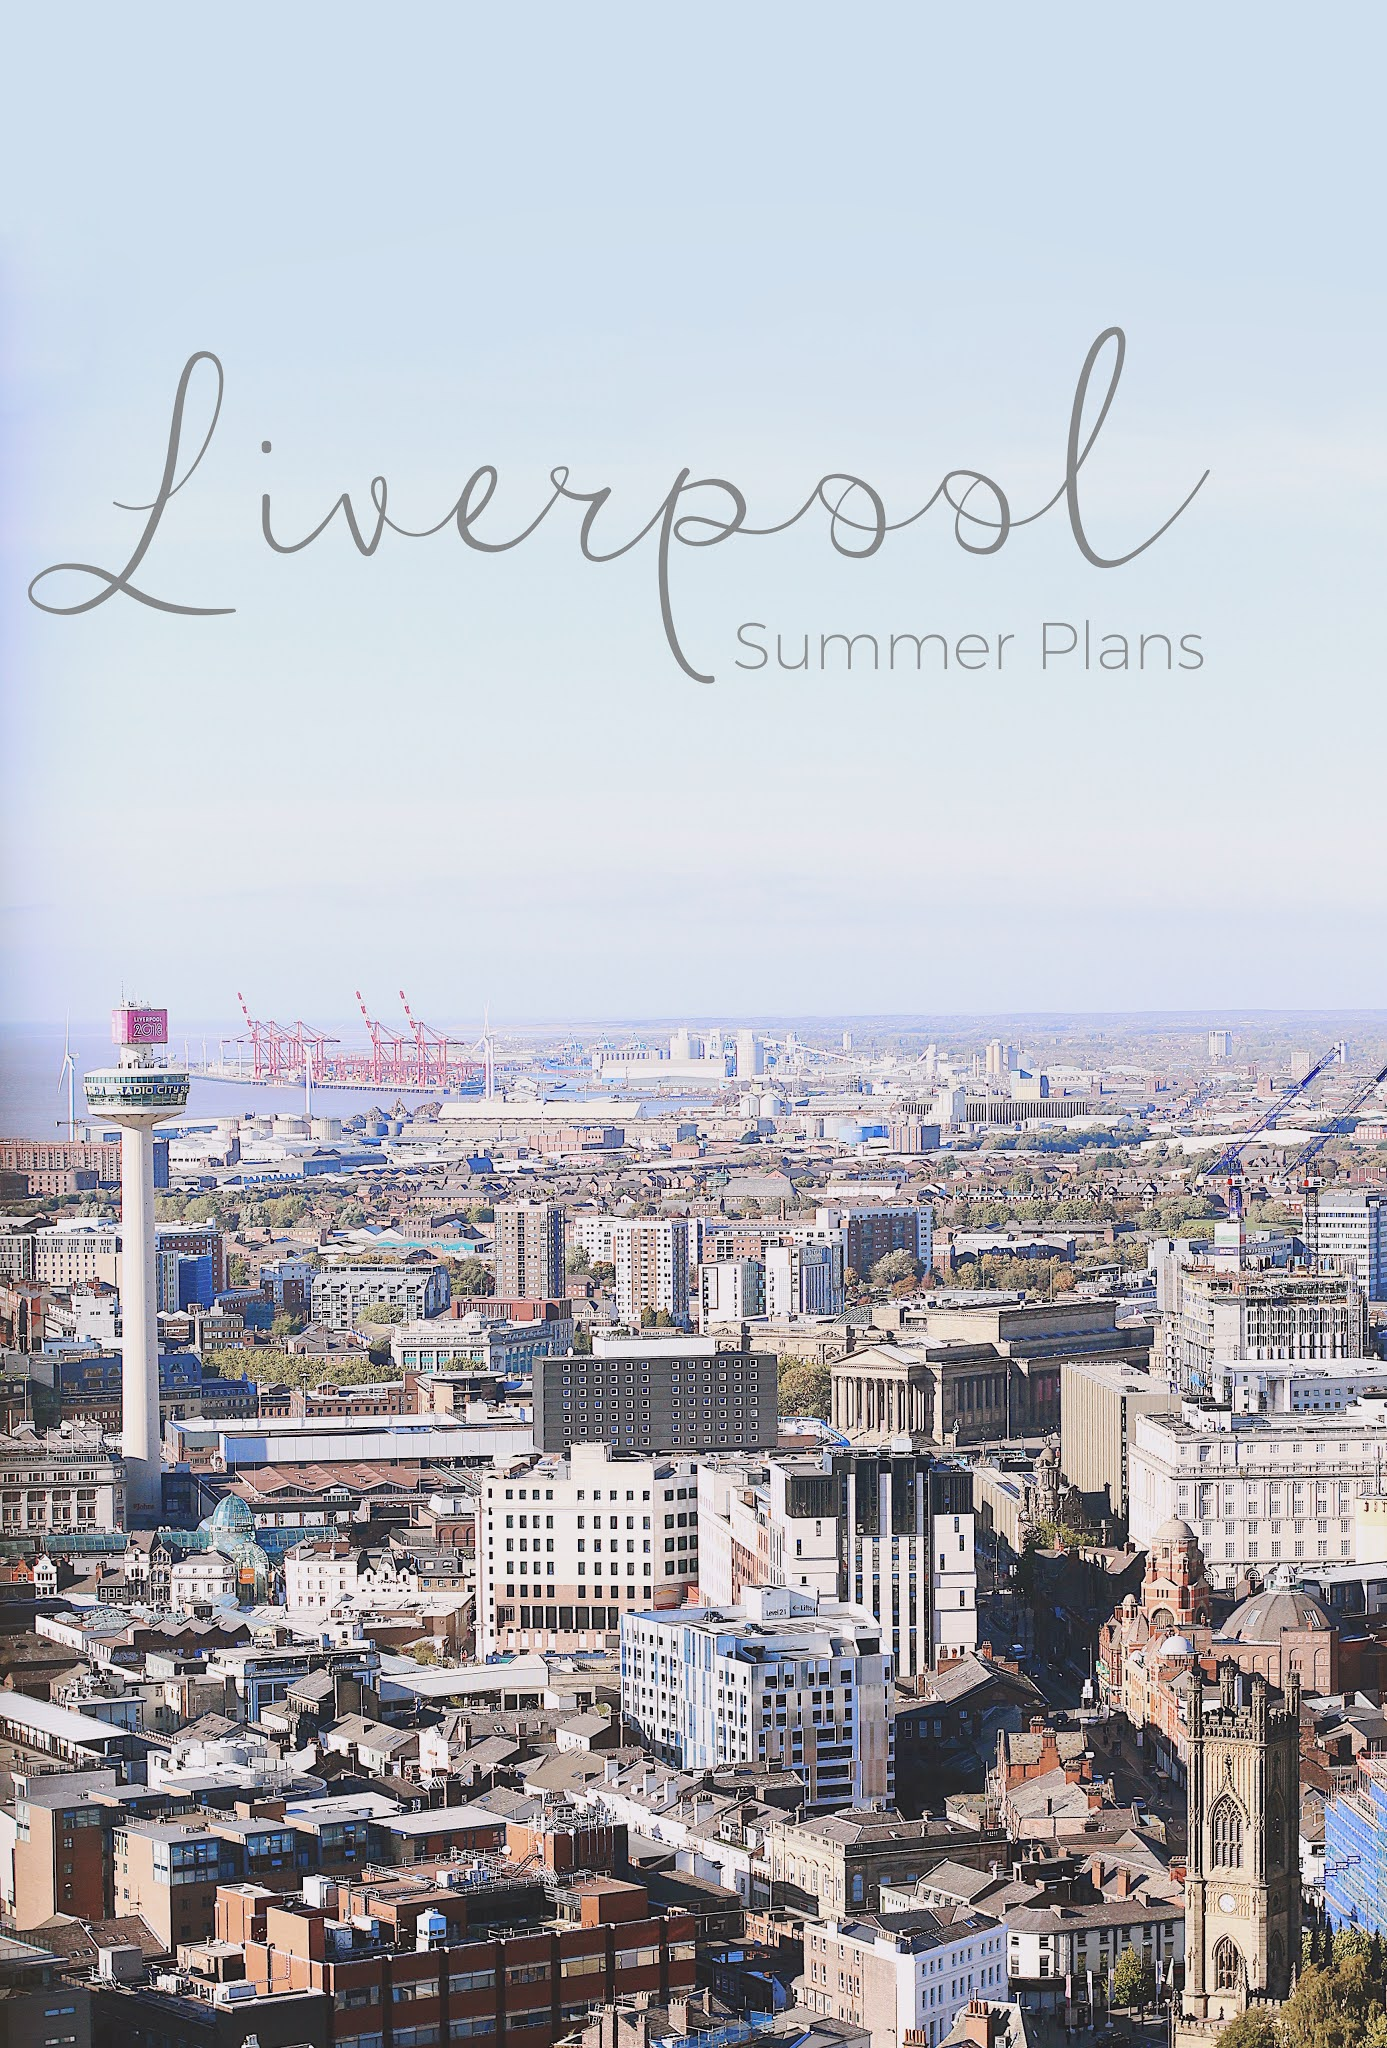 A view of Liverpool's skyline towards the sea, with the words 'Liverpool: Summer Plans' written at the top